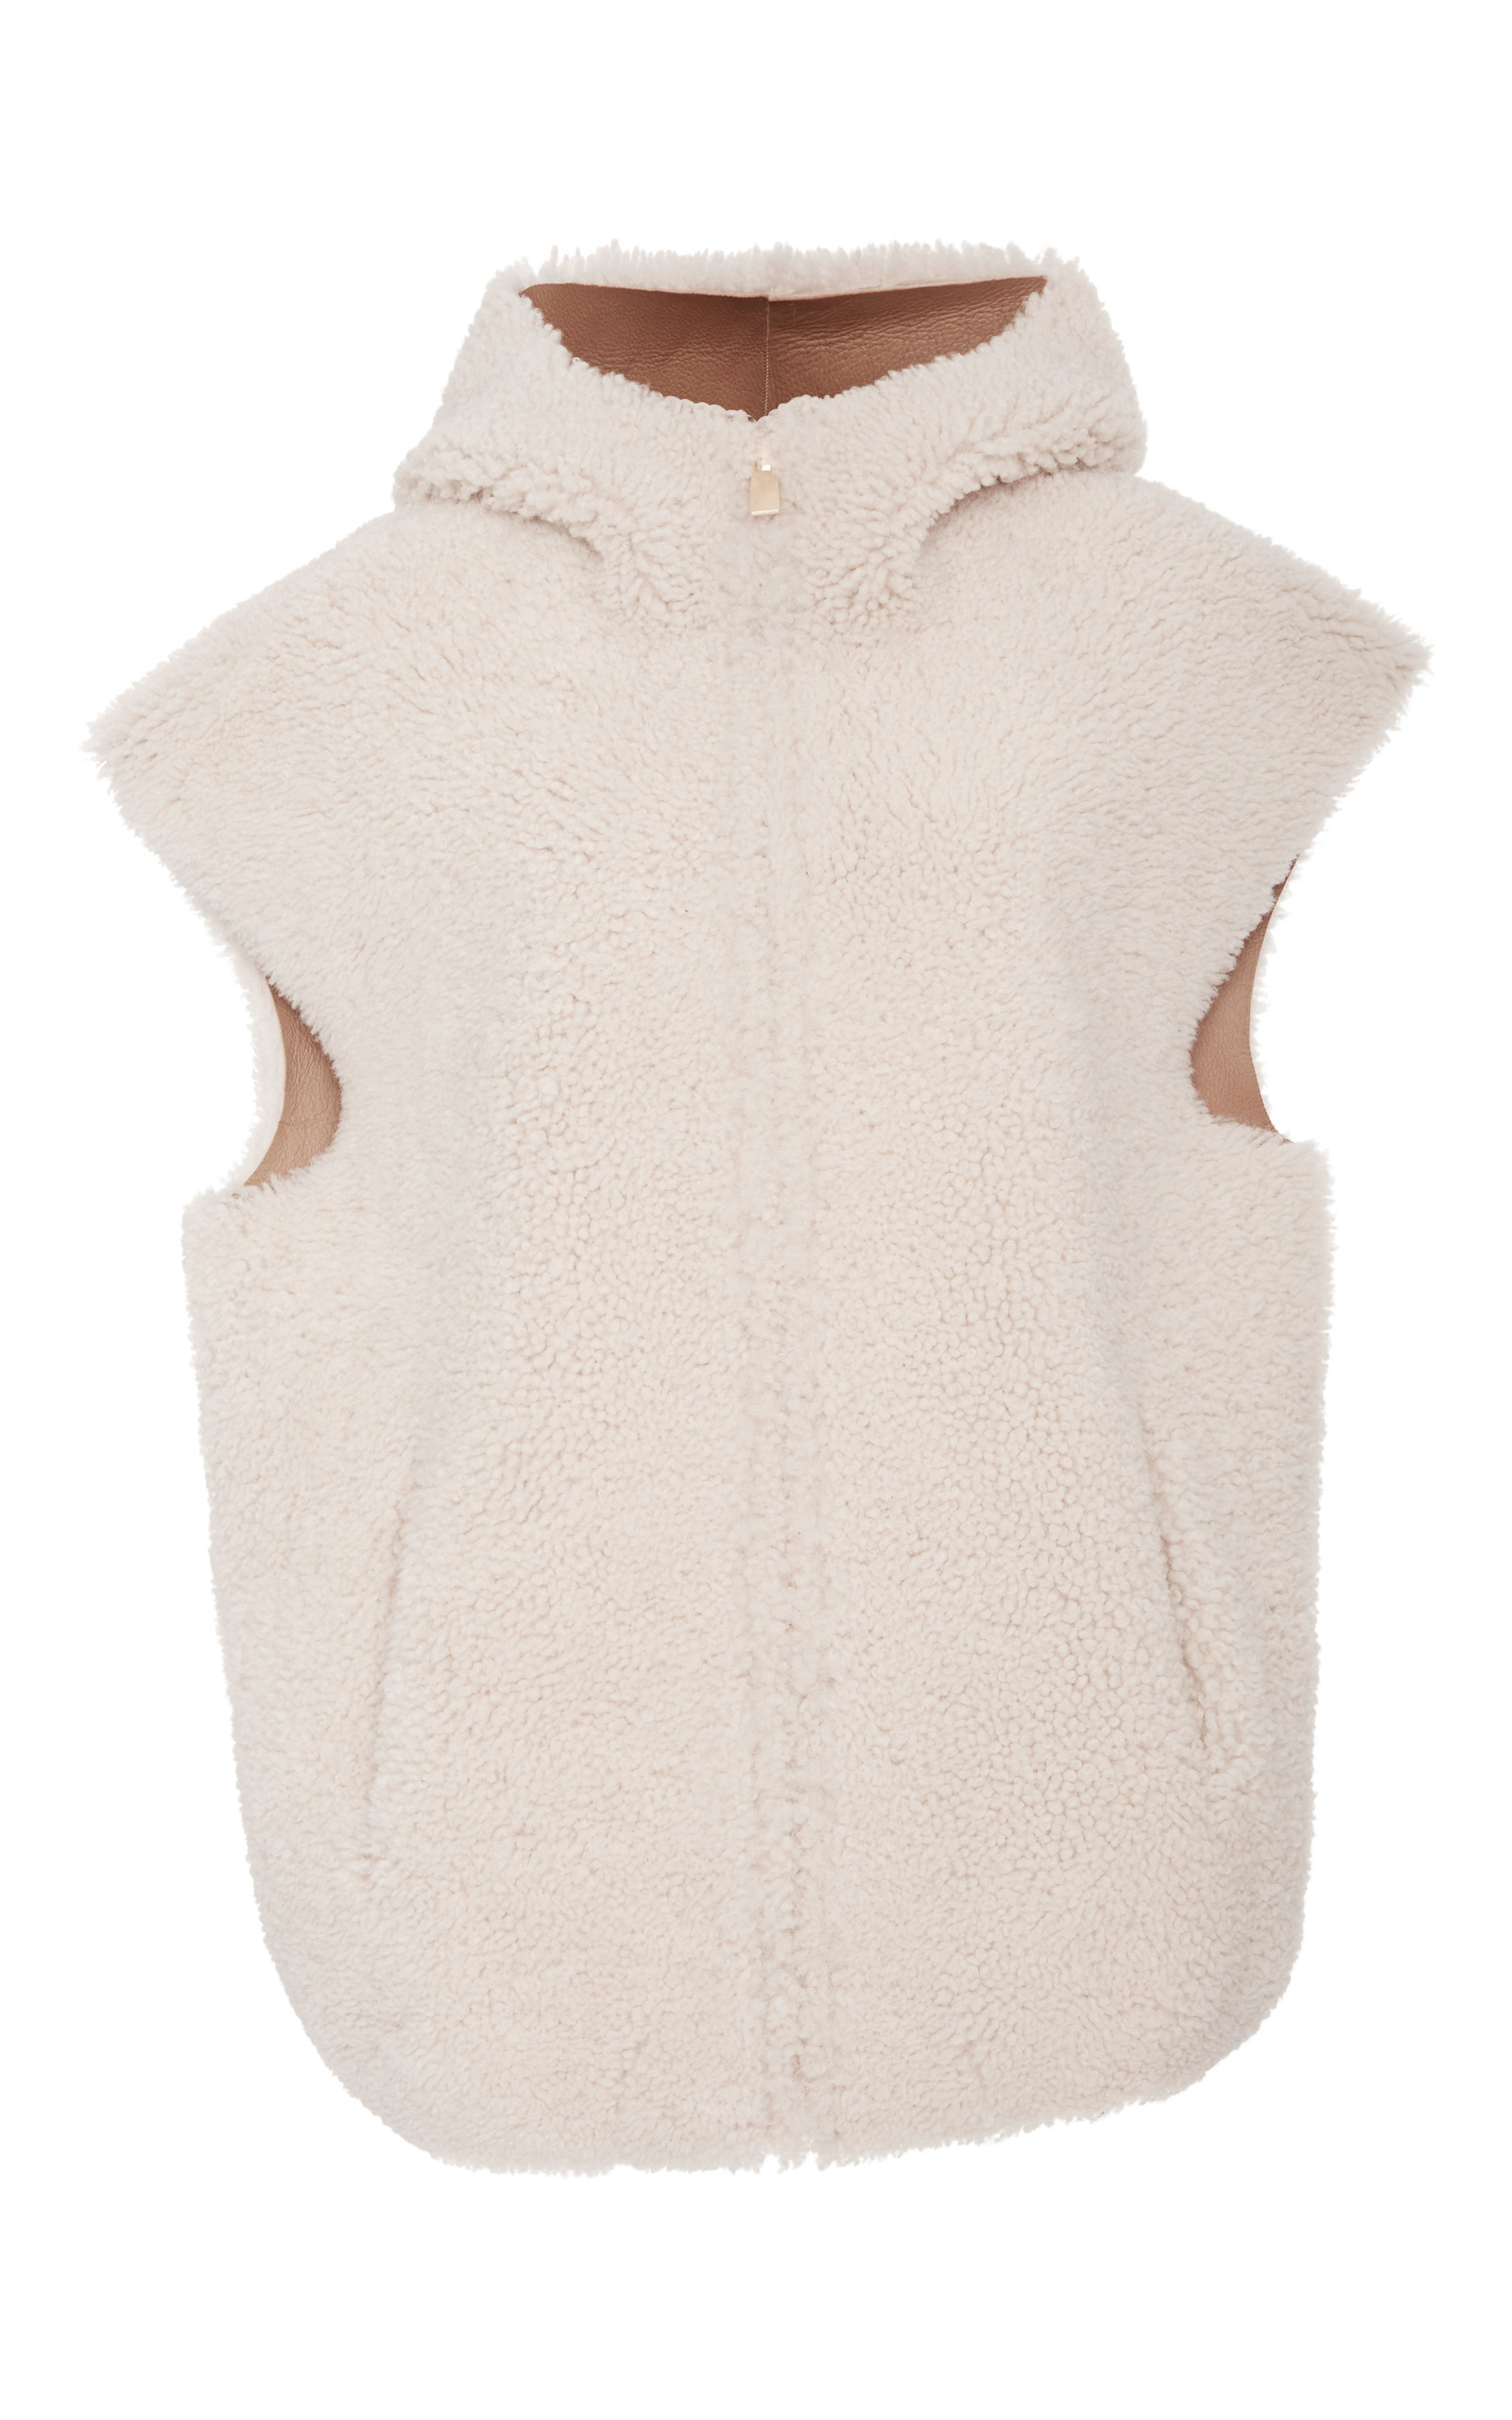 149c12e410d Michael Kors CollectionLamb Shearling Hooded Vest. CLOSE. Loading